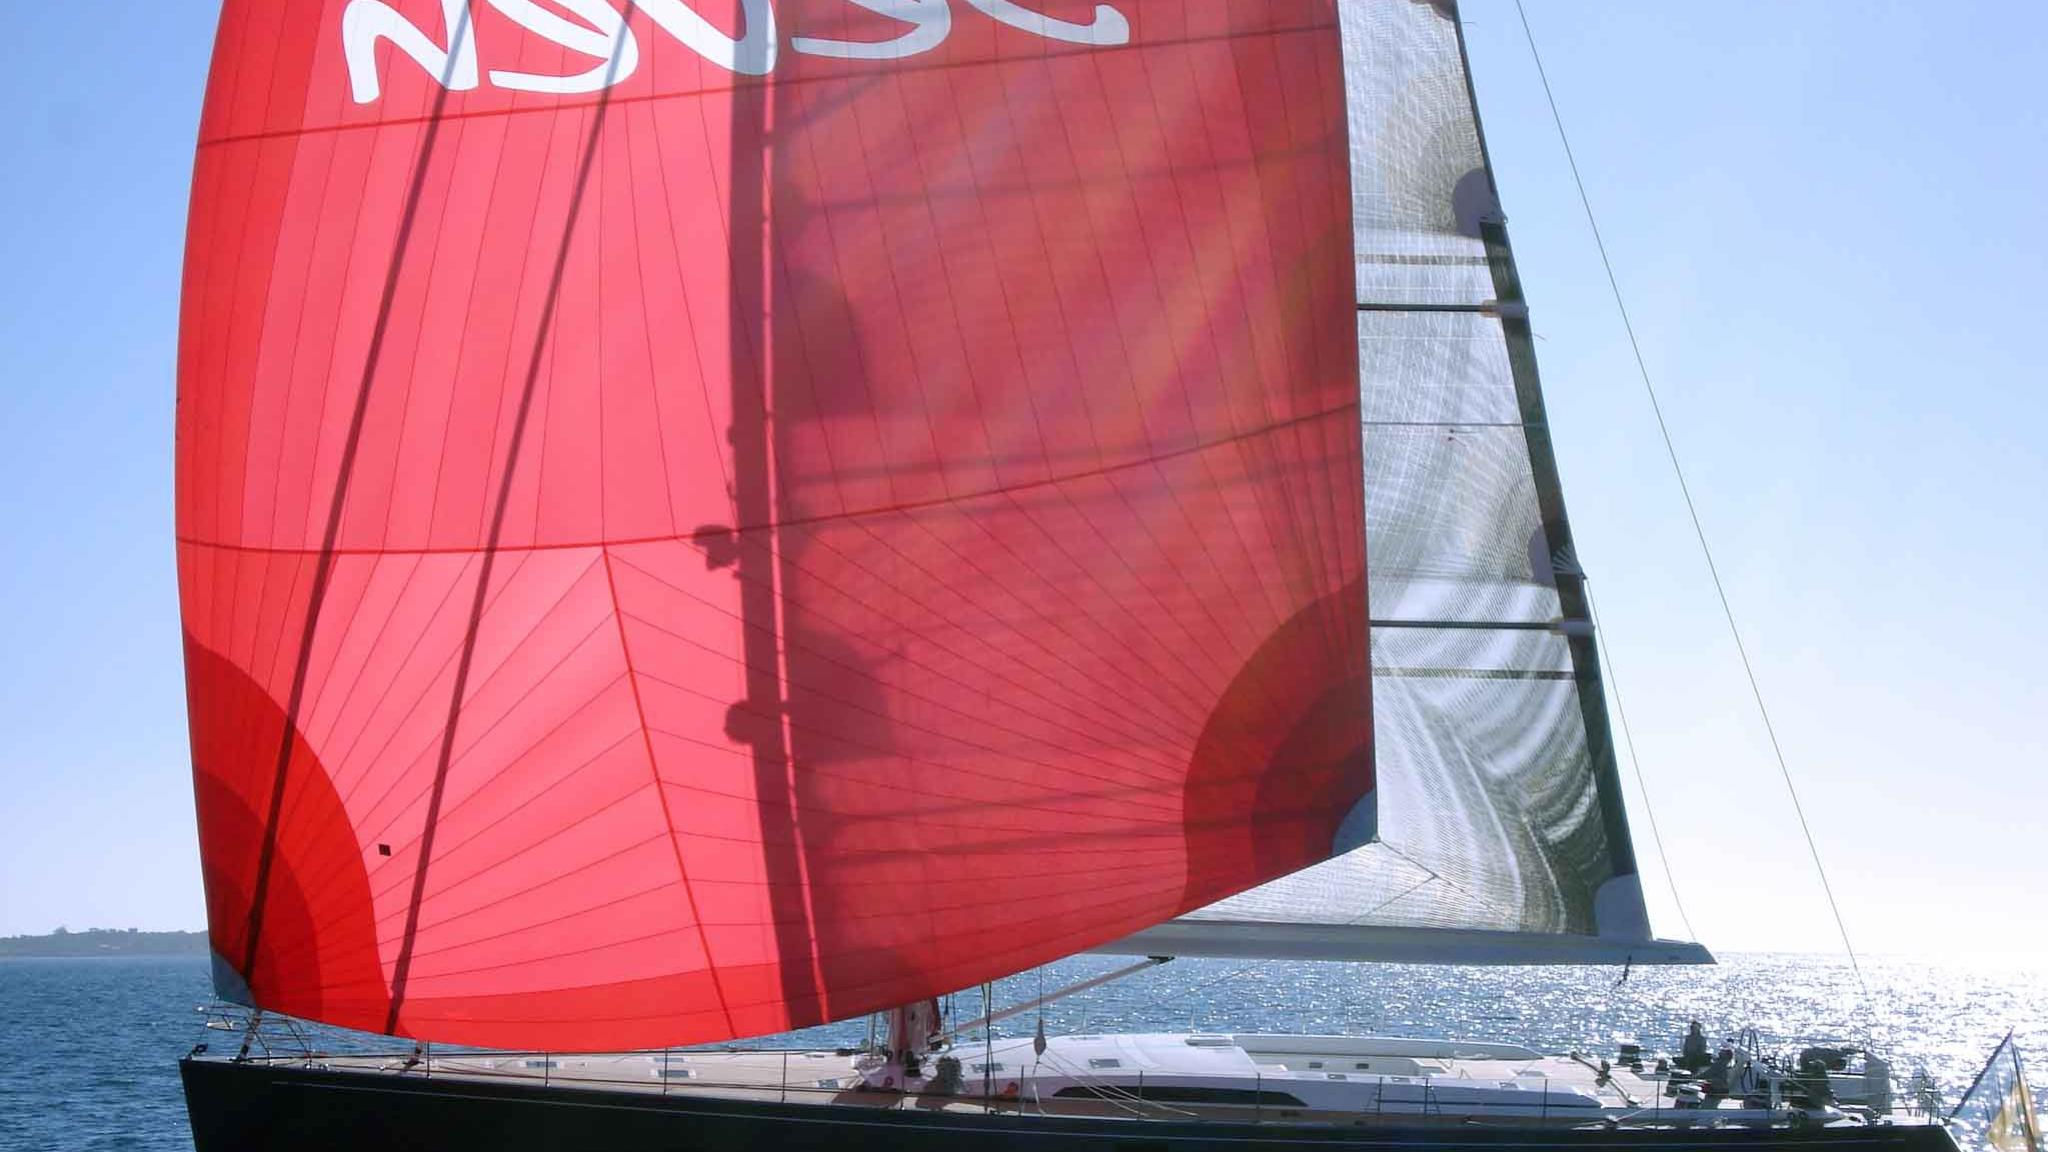 Ms Seven sailing yacht